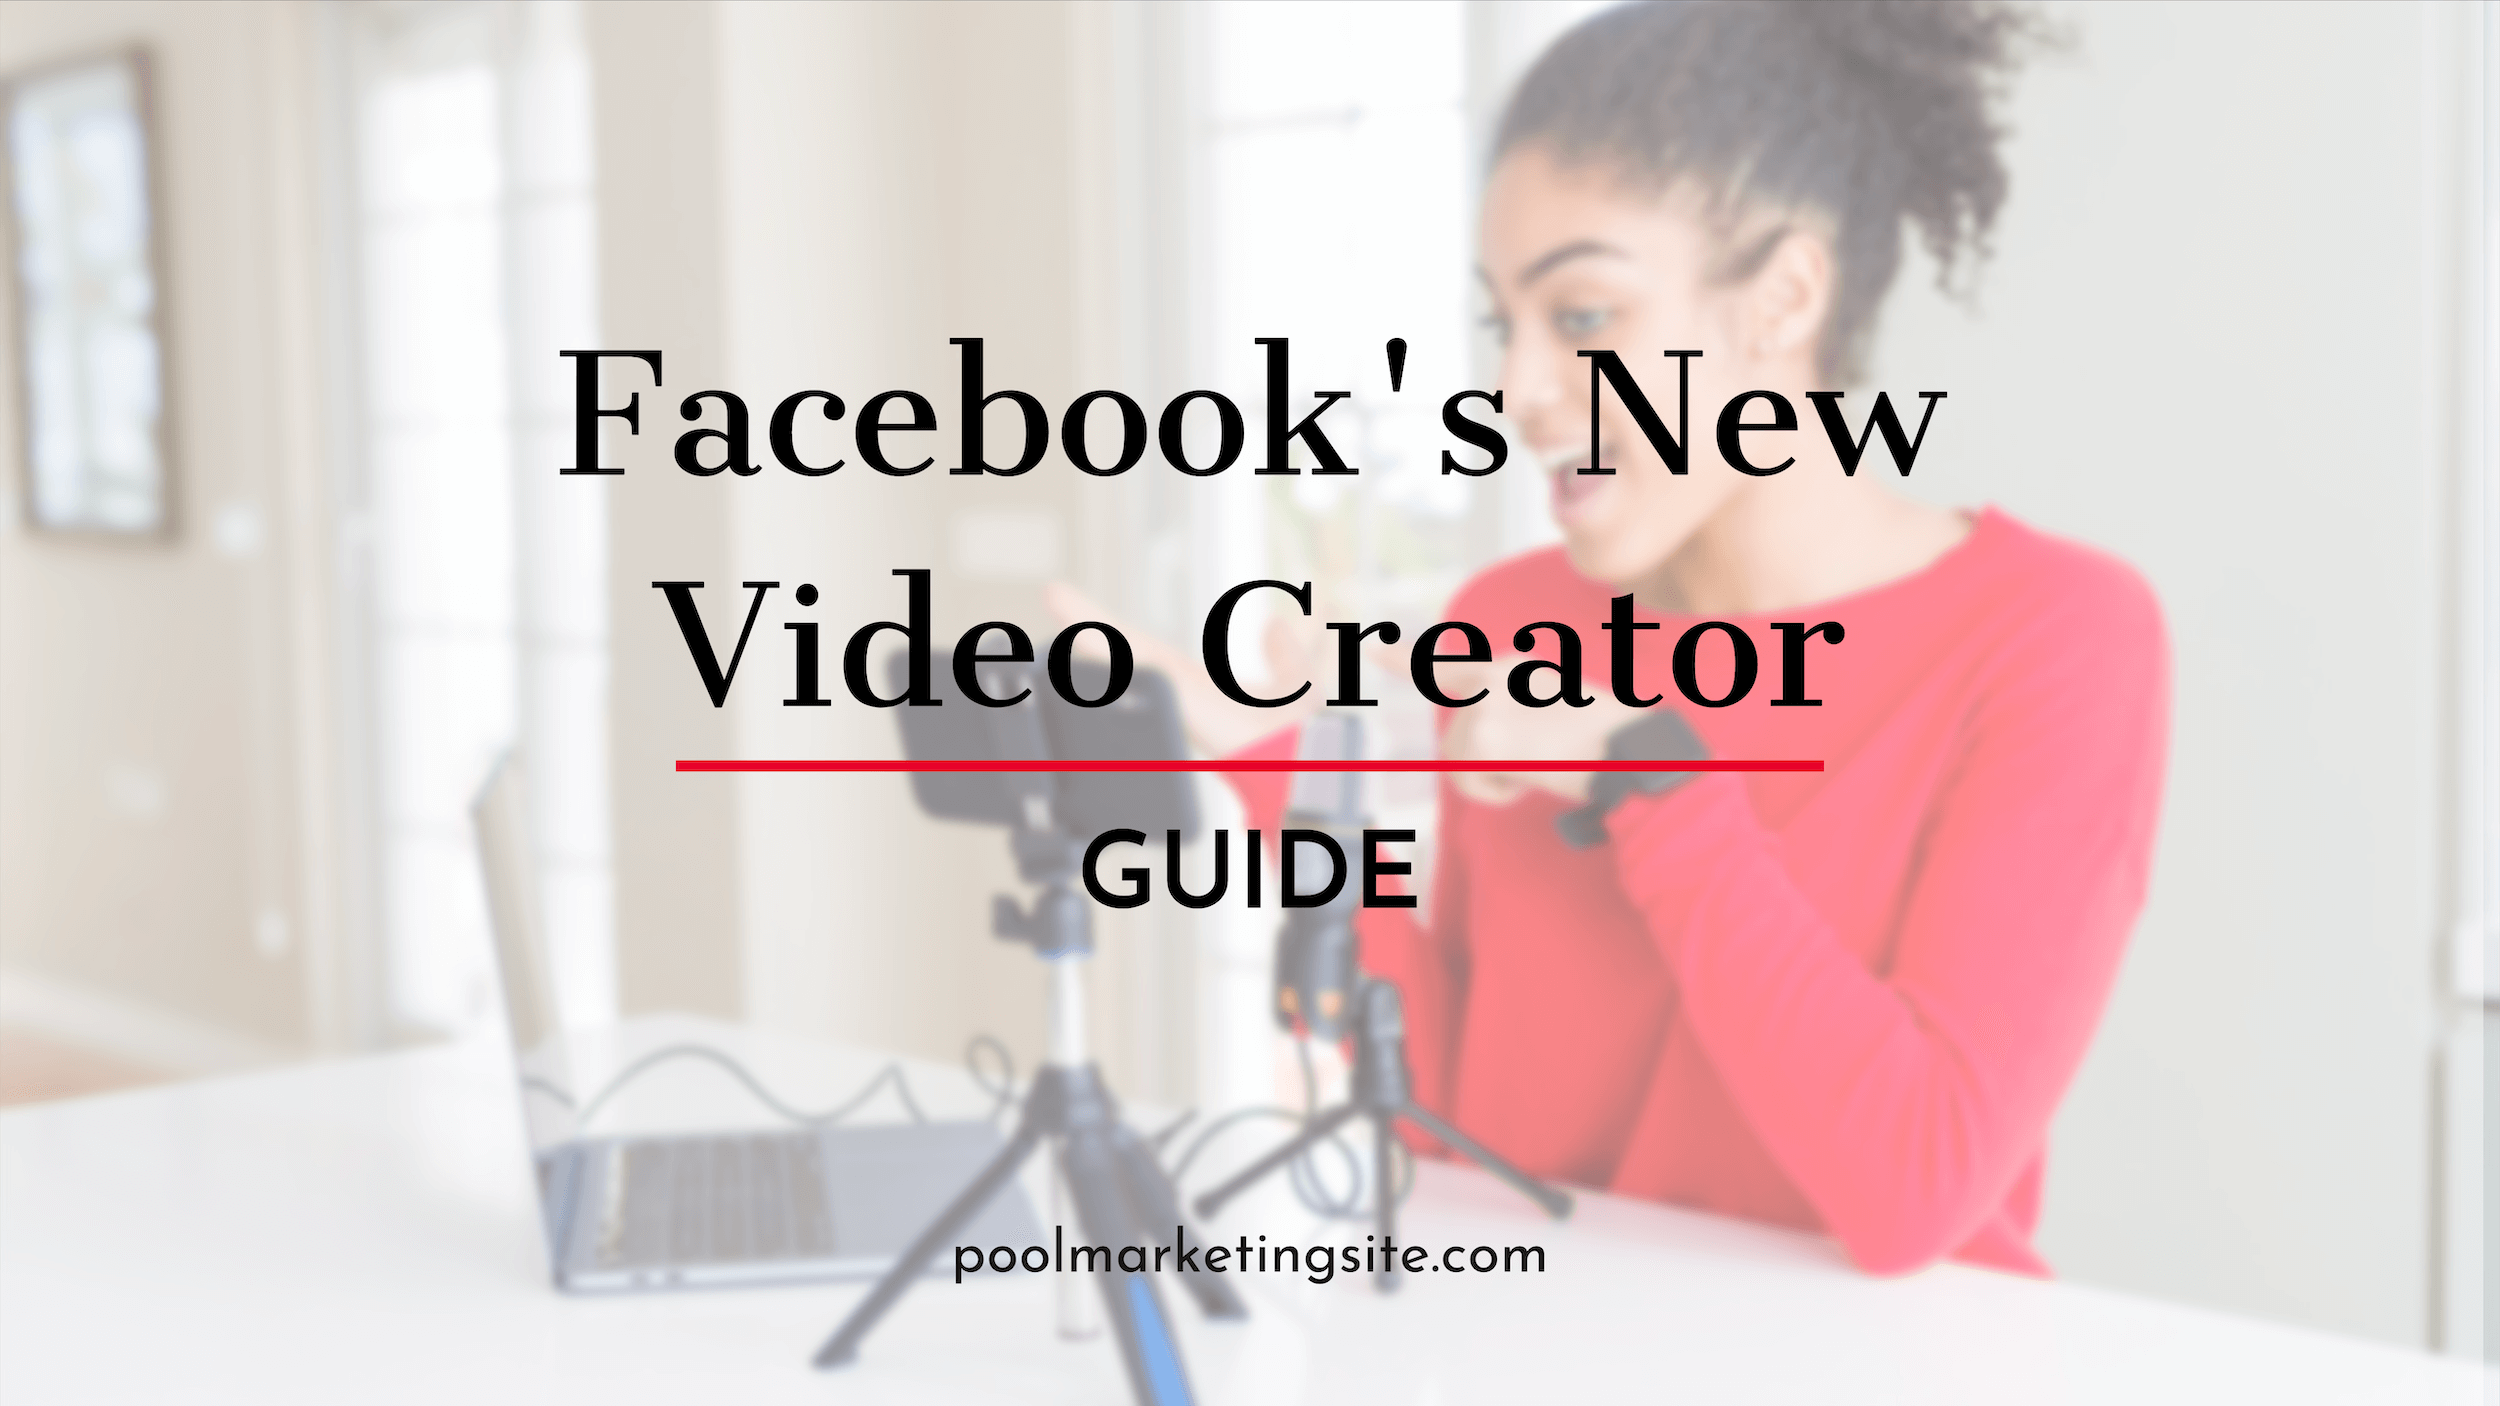 Facebook's New Video Creator Guide